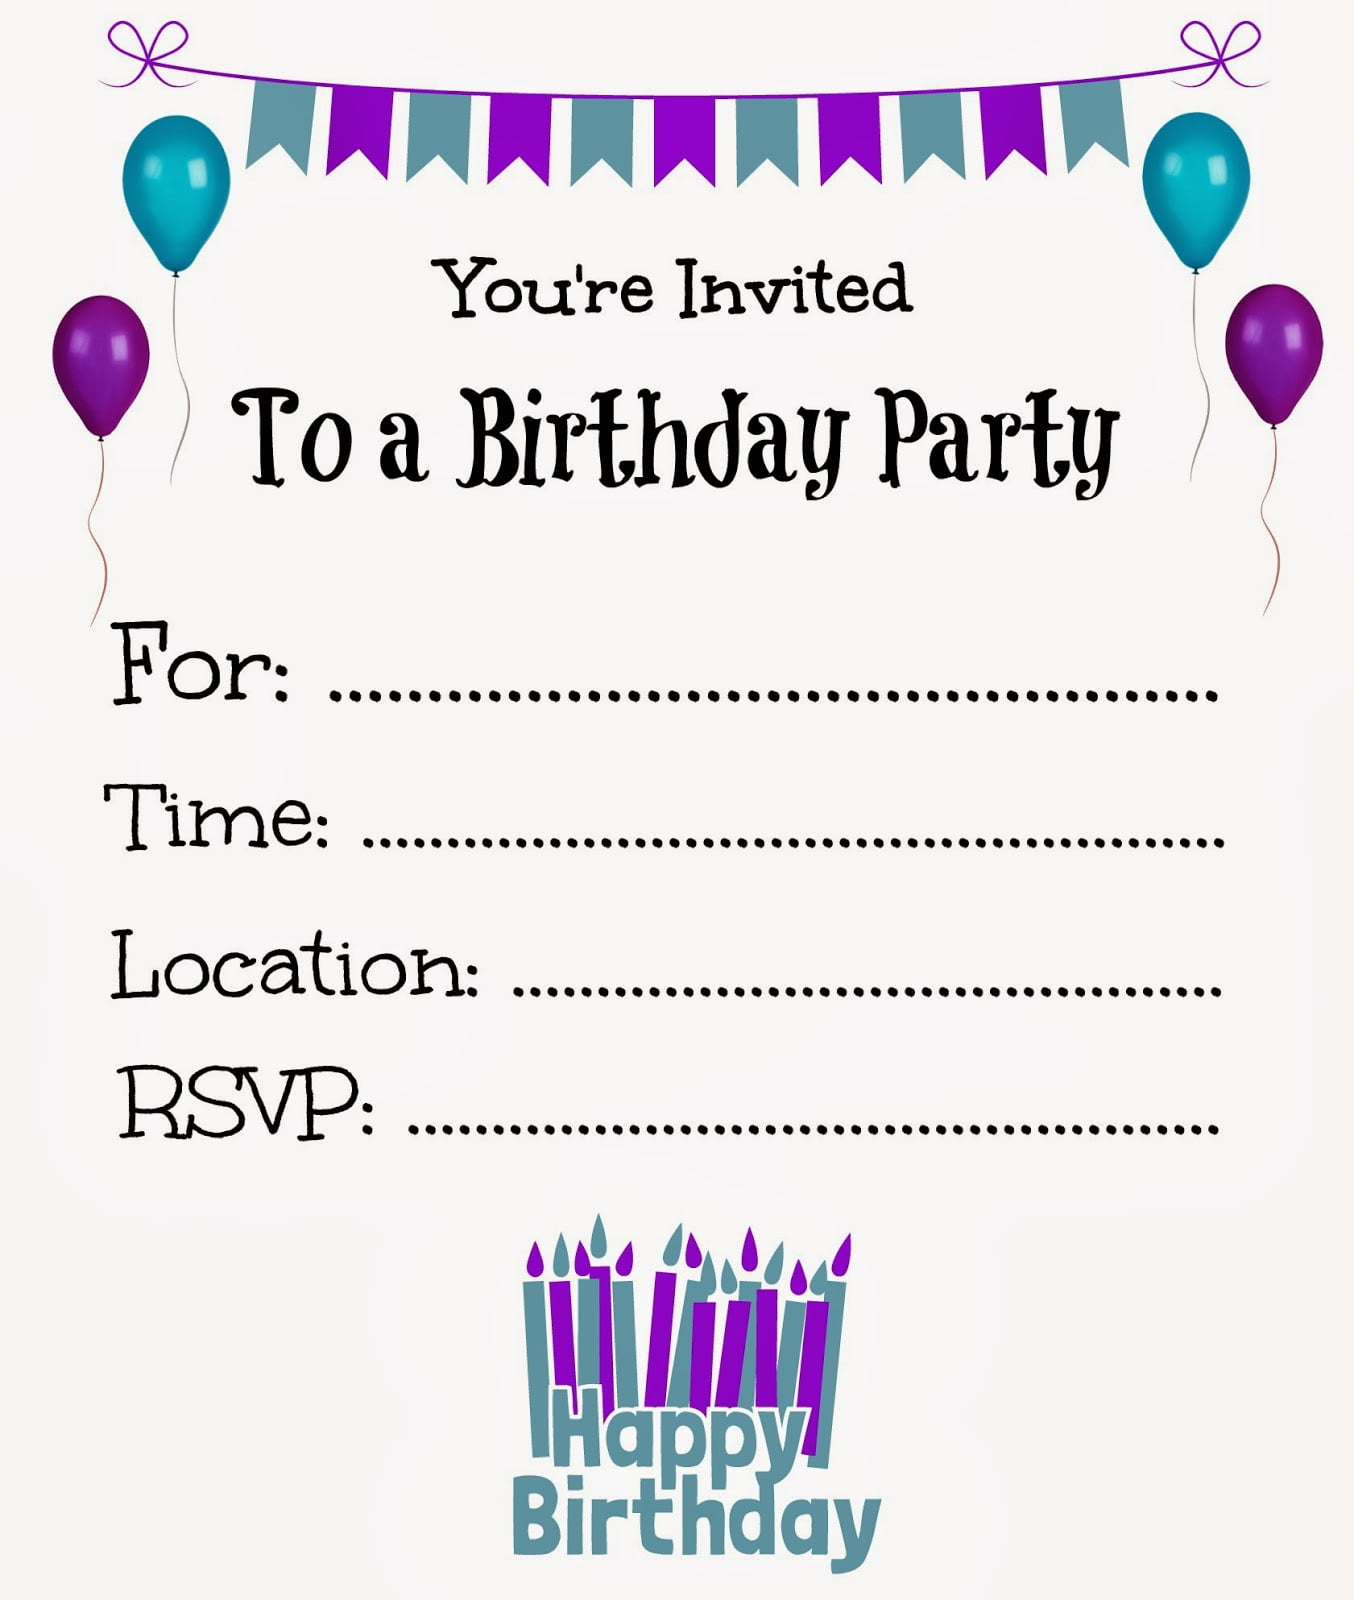 12 Year Old Birthday Invitations Best Nana S Birthday Images On 12